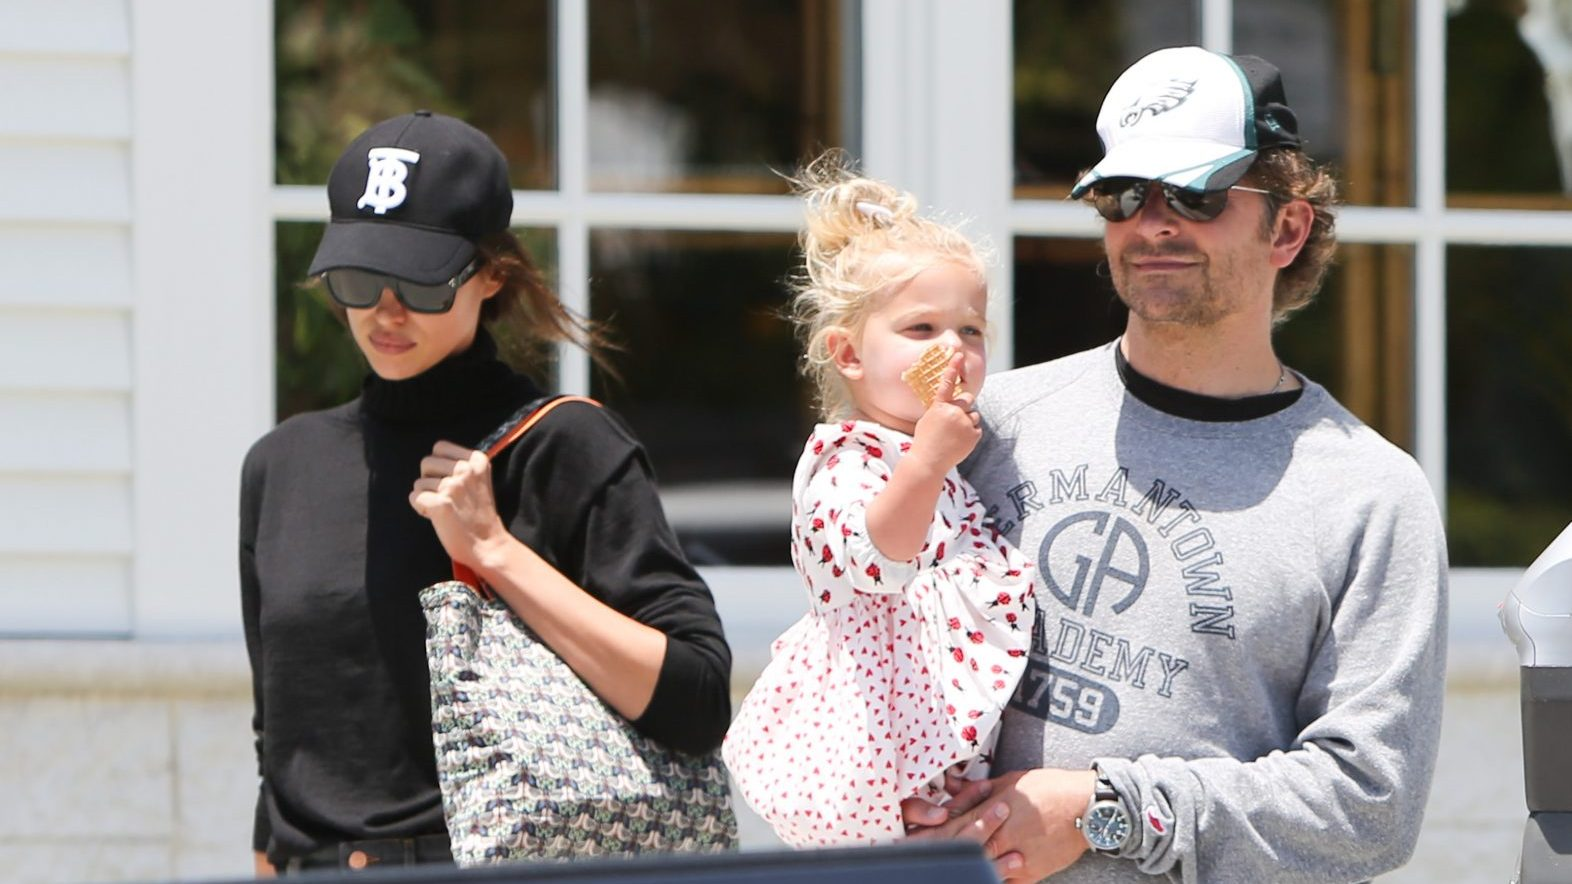 Bradley Cooper Spotted With Irina Shayk and Daughter Lea in L.A.